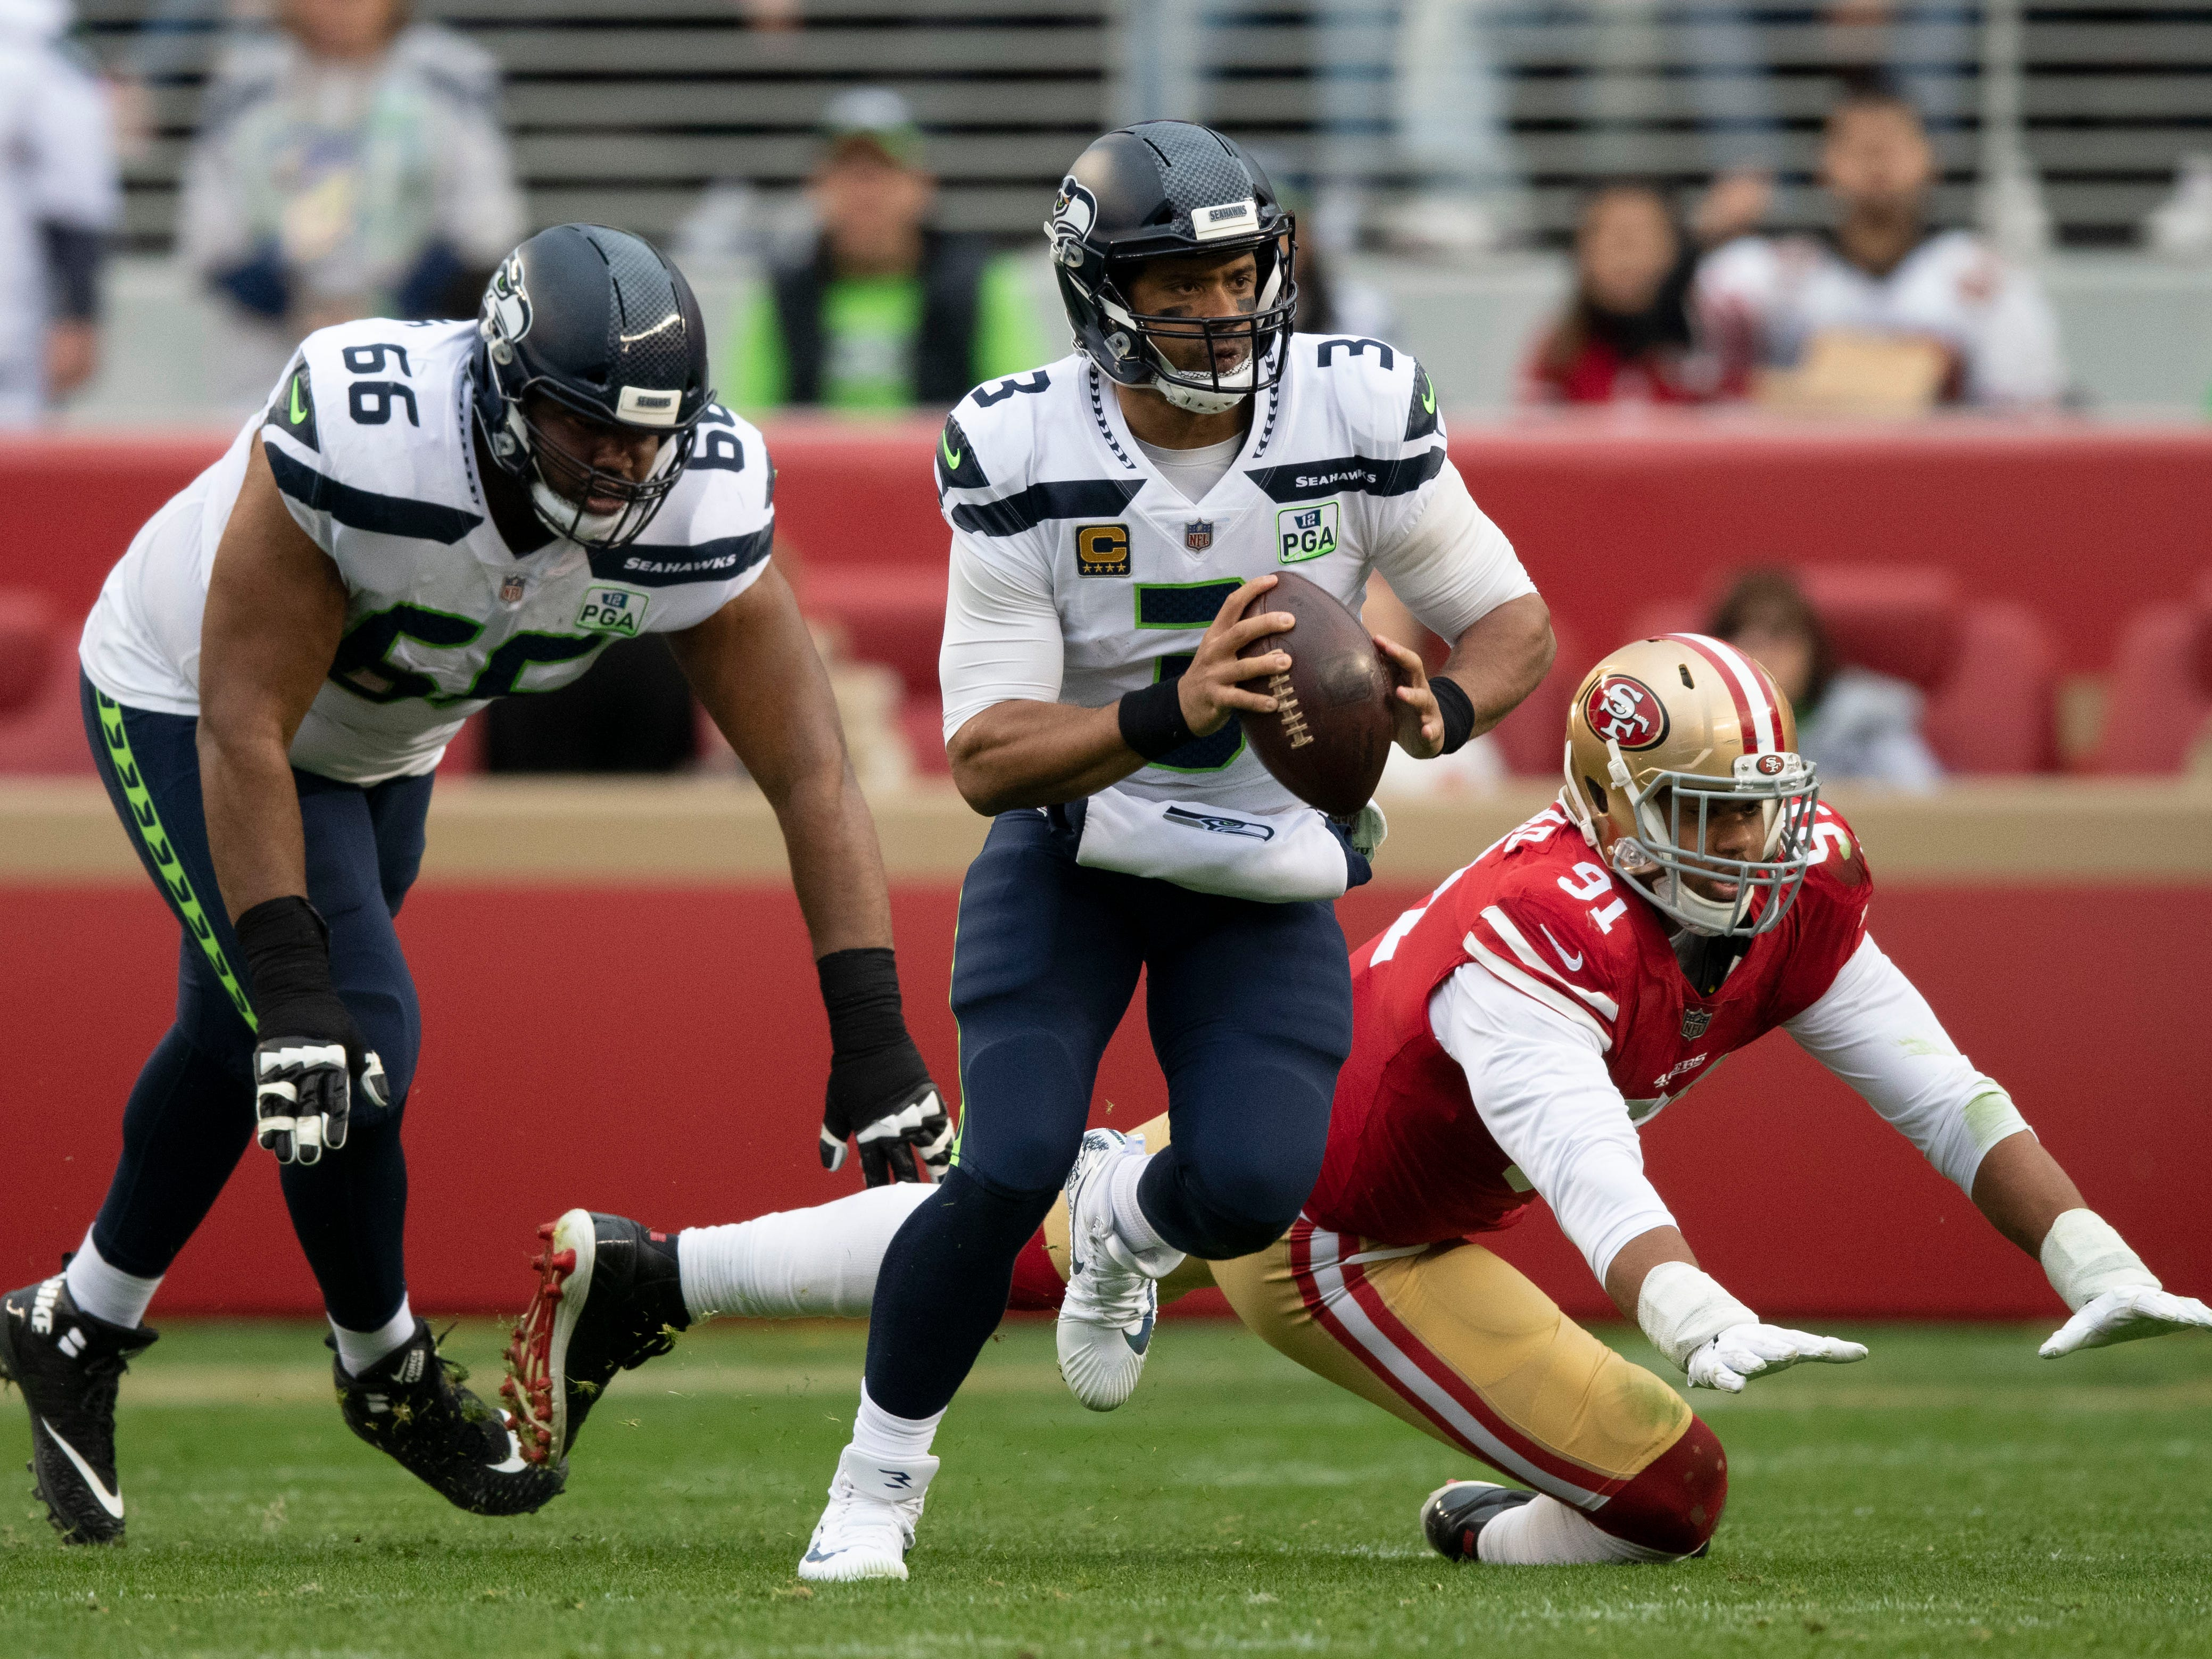 Seattle Seahawks quarterback Russell Wilson (3) runs the football against San Francisco 49ers defensive end Arik Armstead (91) during the first quarter at Levi's Stadium.